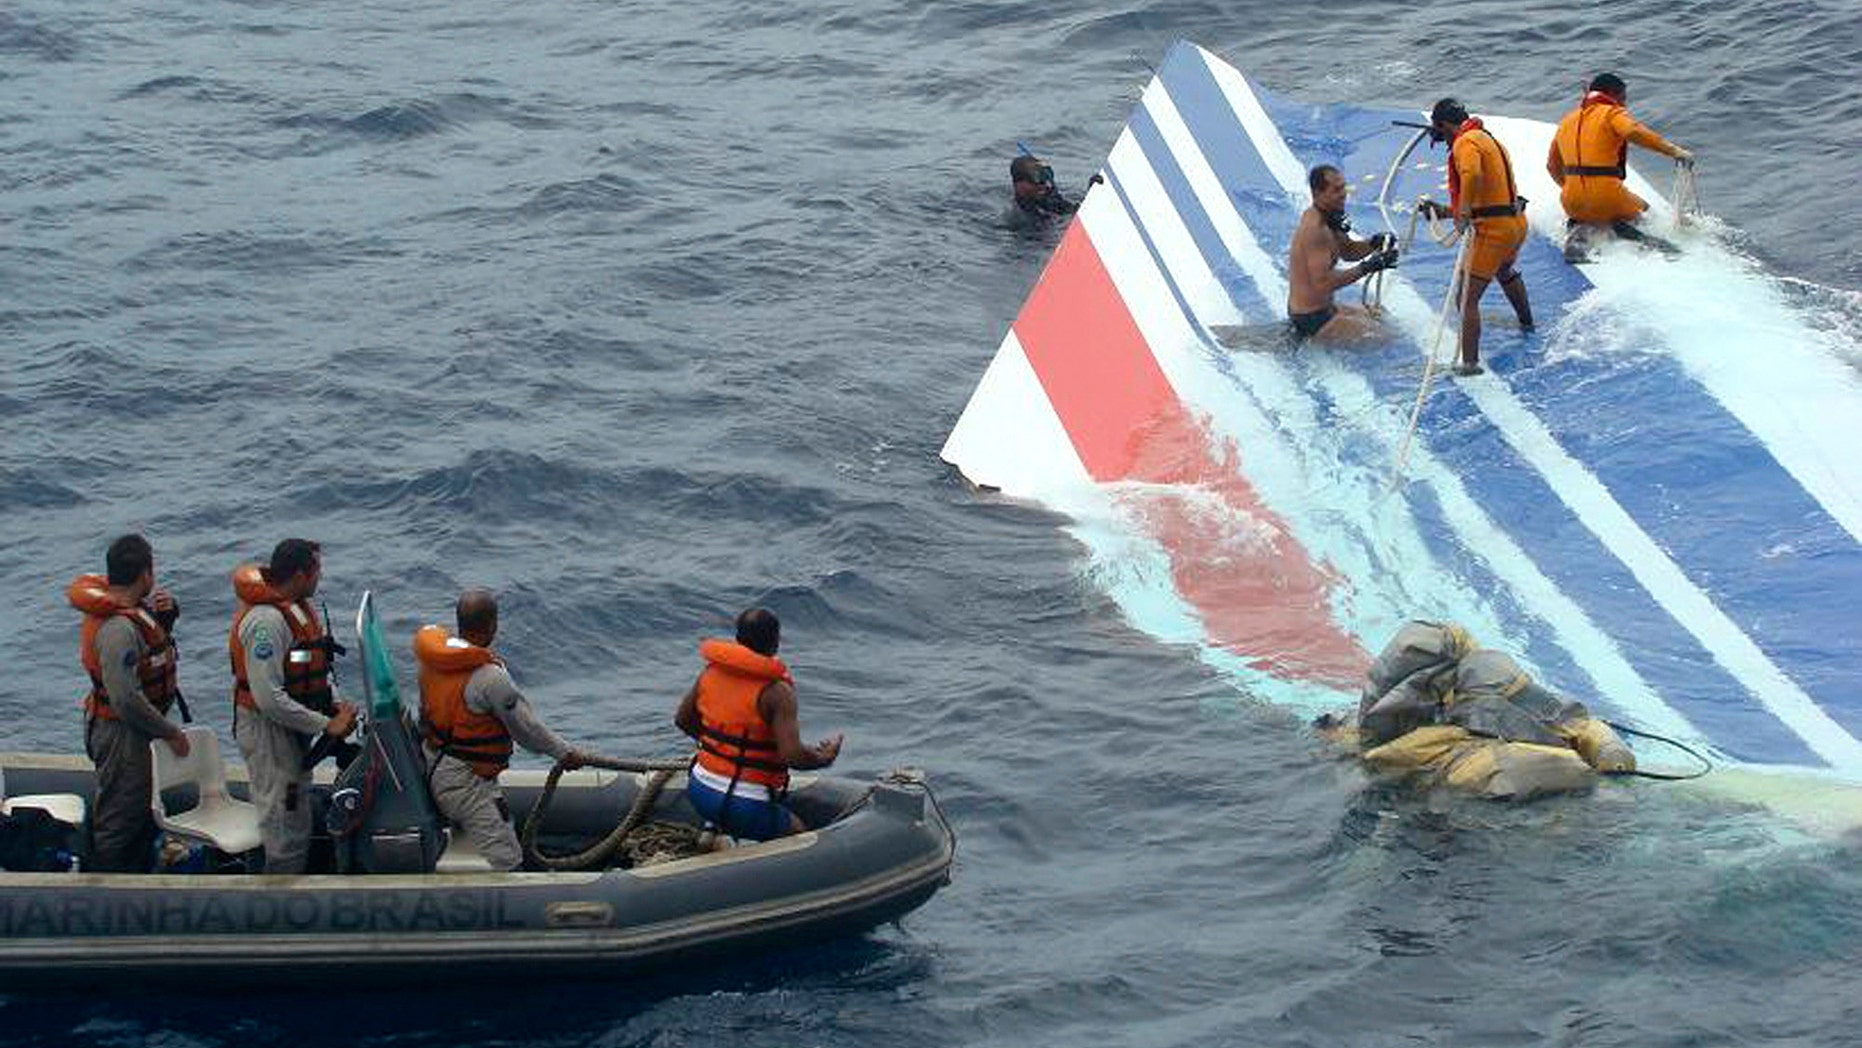 Brazil's Navy sailors recovering debris from the missing Air France jet at the Atlantic Ocean. Officials say flight recorders from an Air France plane that crashed nearly two years ago show that the captain only arrived in the cockpit after the plane had begun its fateful 3 1/2-minute descent. The initial findings of the French air accident investigation agency, the BEA, based on a reading of the so-called black boxes recovered from the ocean depths, found that the captain had been resting when the emergency began. All 228 aboard the Rio de Janeiro to Paris flight were killed on June 1, 2009.